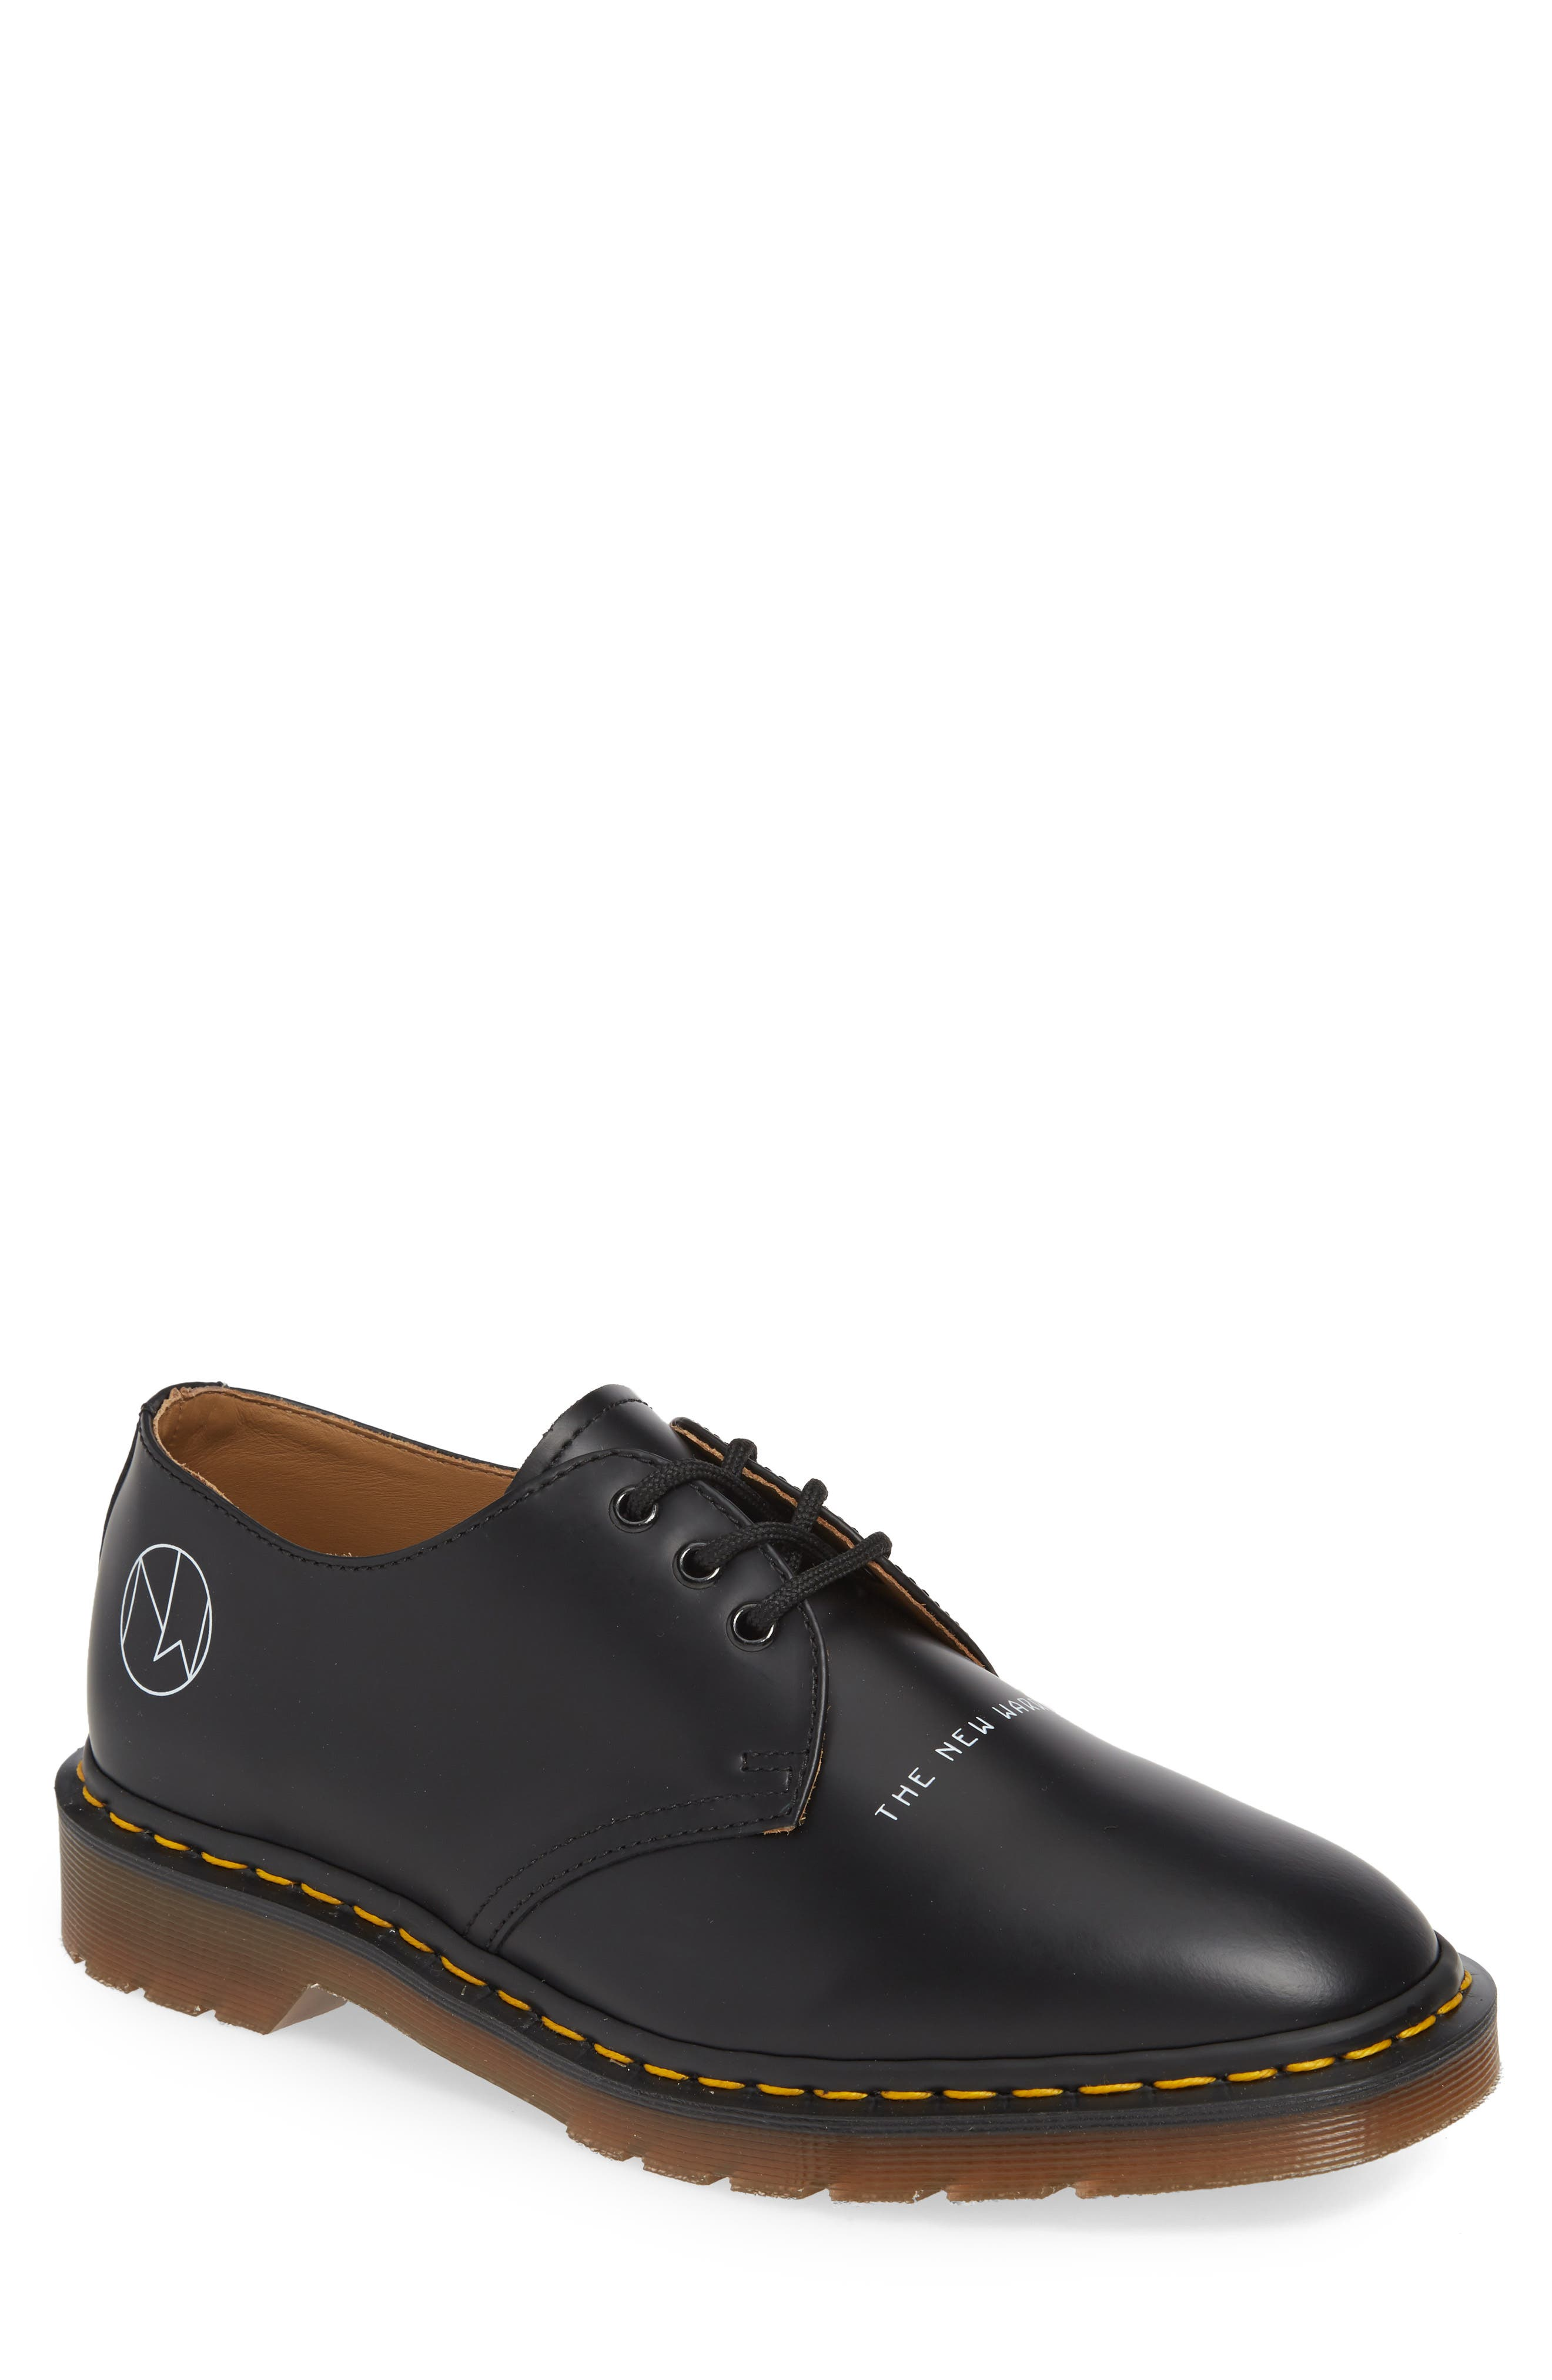 x UNDERCOVER 1461 Derby, Main, color, BLACK LEATHER